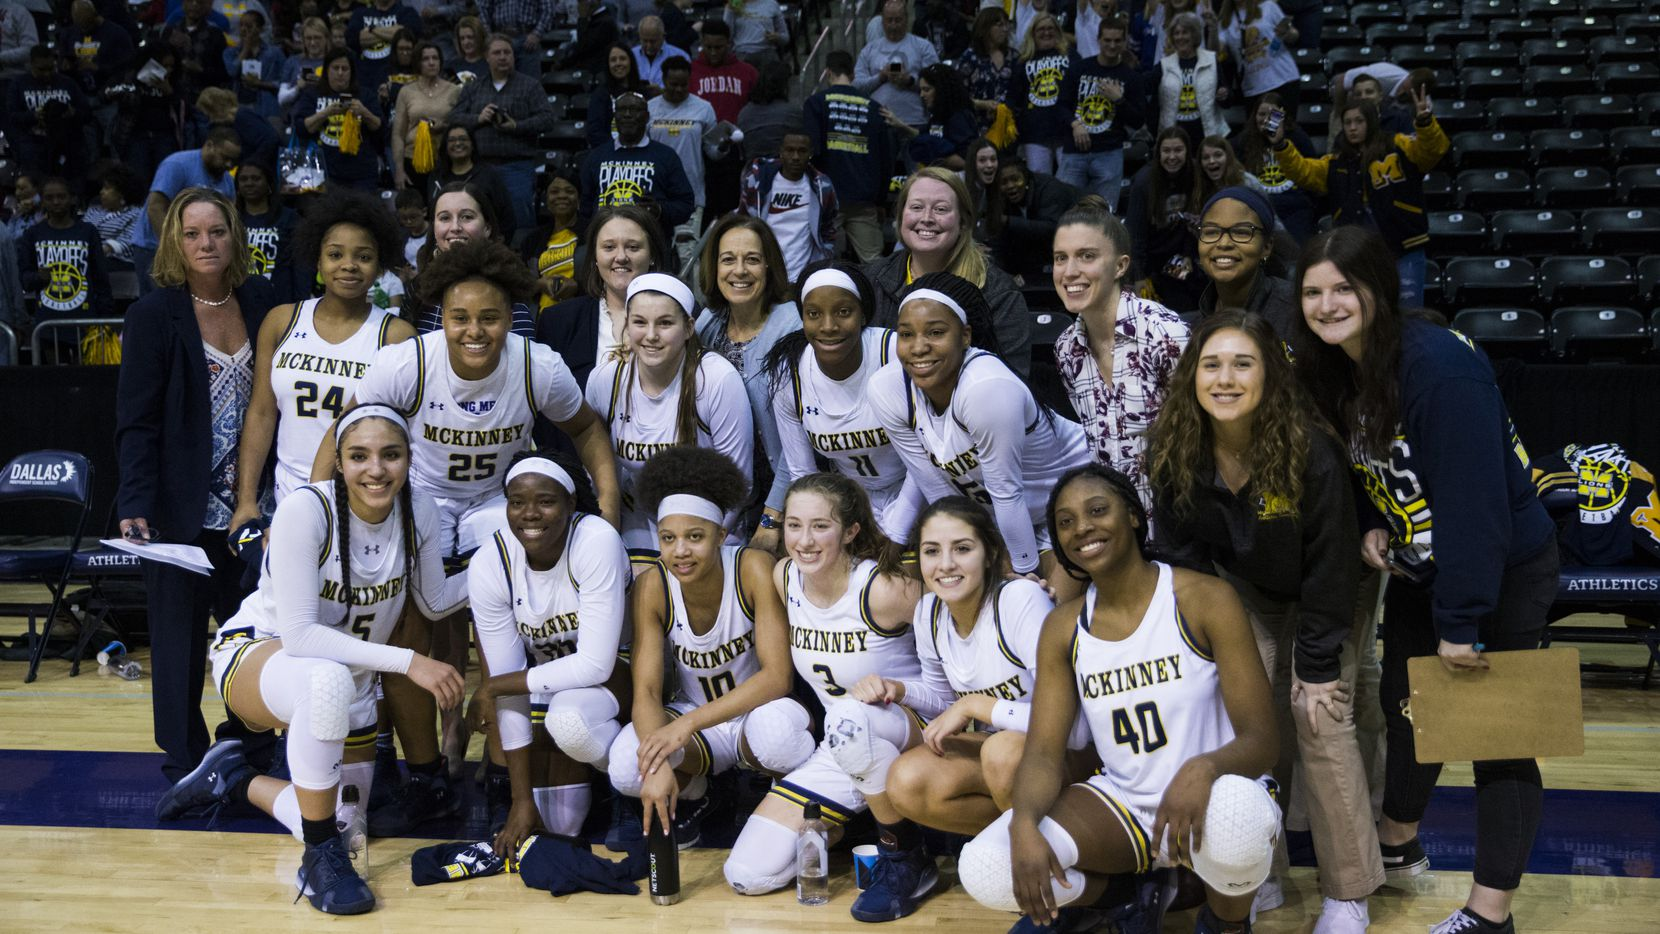 McKinney poses for a photo after a 66-53 win in a UIL 6A Region II semifinal girls basketball game between McKinney and Pflugerville Hendrickson on Friday, February 28, 2020 at Ellis Davis Field House in Dallas.